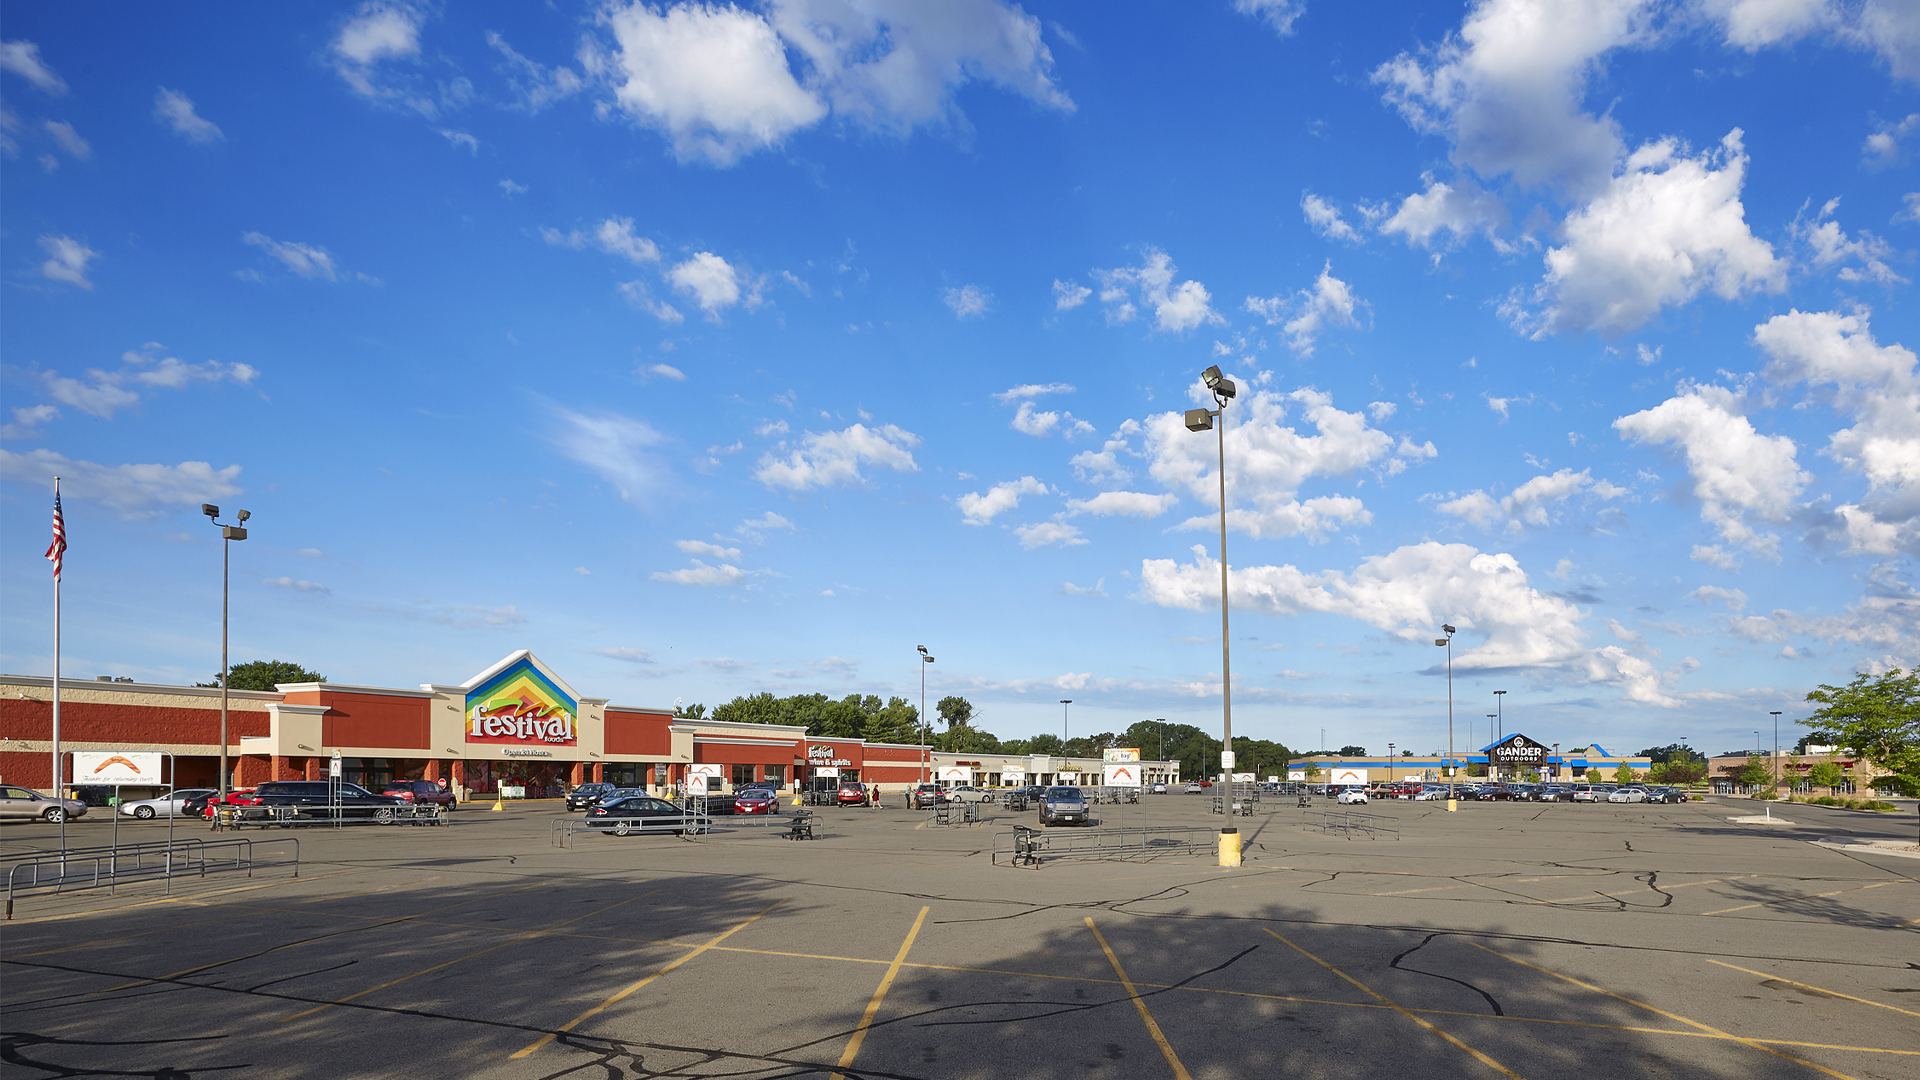 Crossing Meadows Retail Shopping Center Onalaska WI exterior wide angle view of shopping center